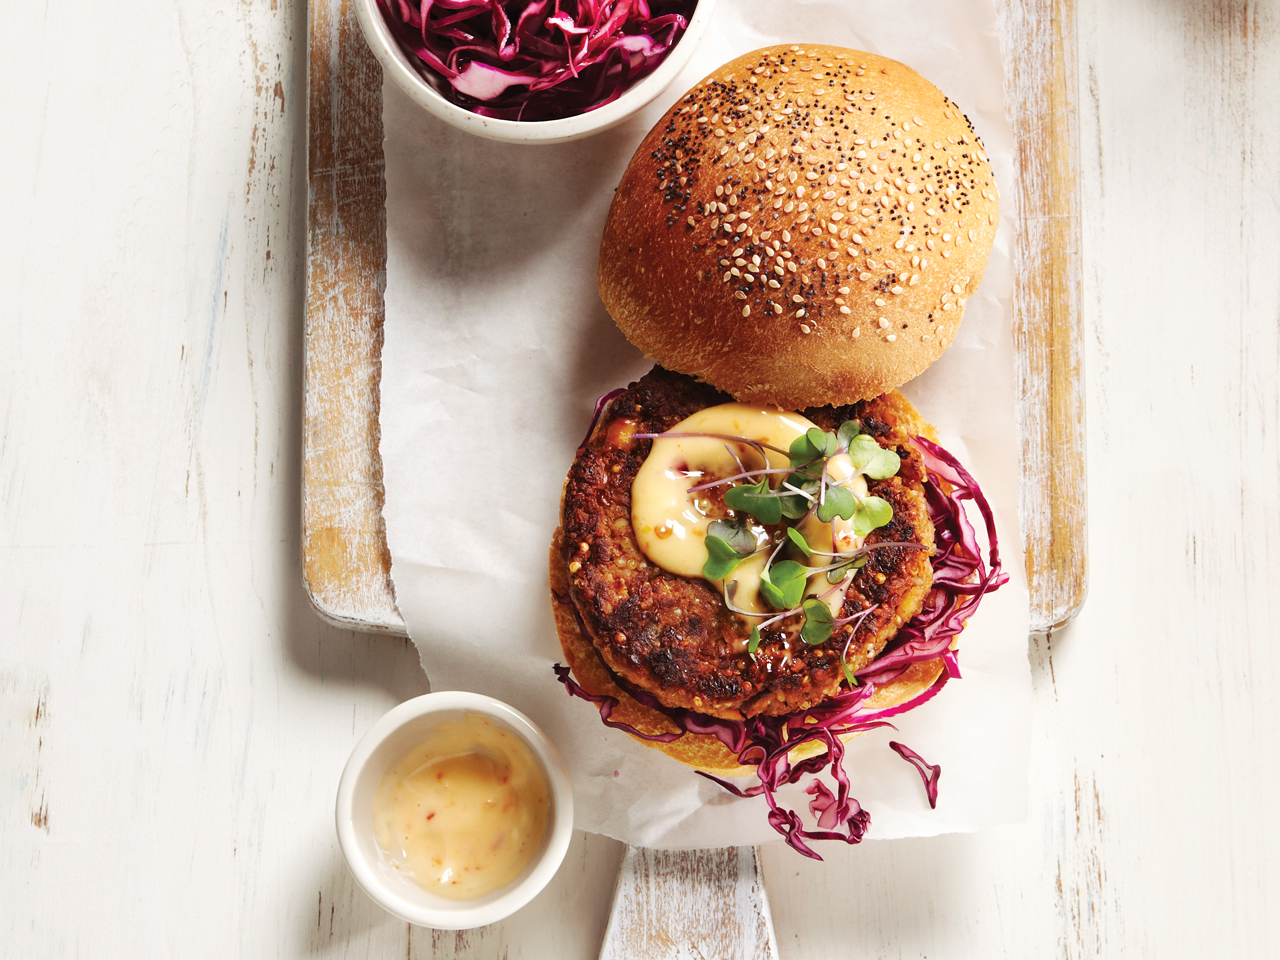 A chickpea burger topped with mayo and cabbage